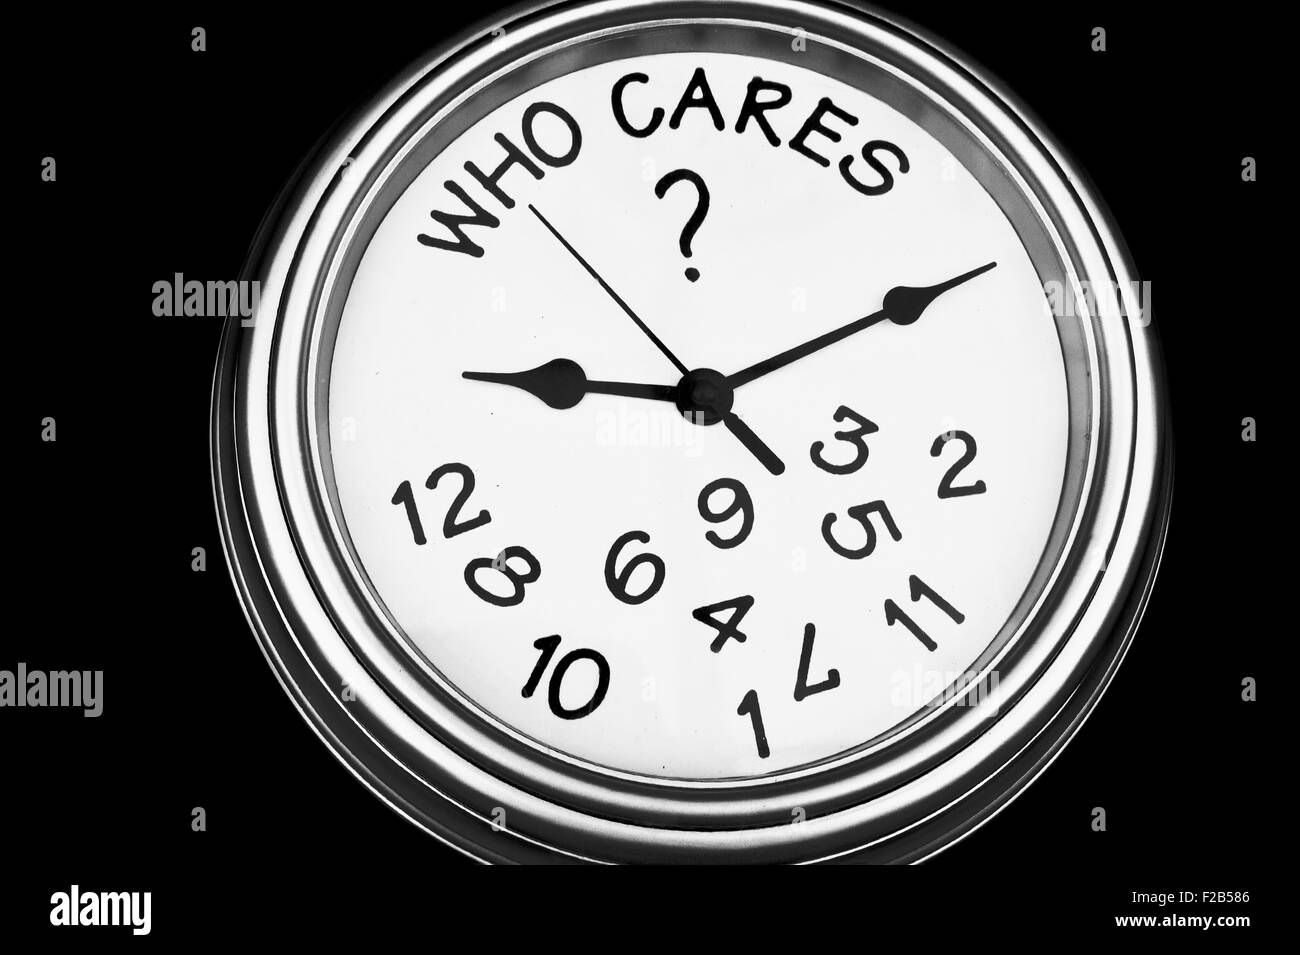 A black and white  image of a clock with numbers falling off showing the concept of time doesn't matter - Stock Image